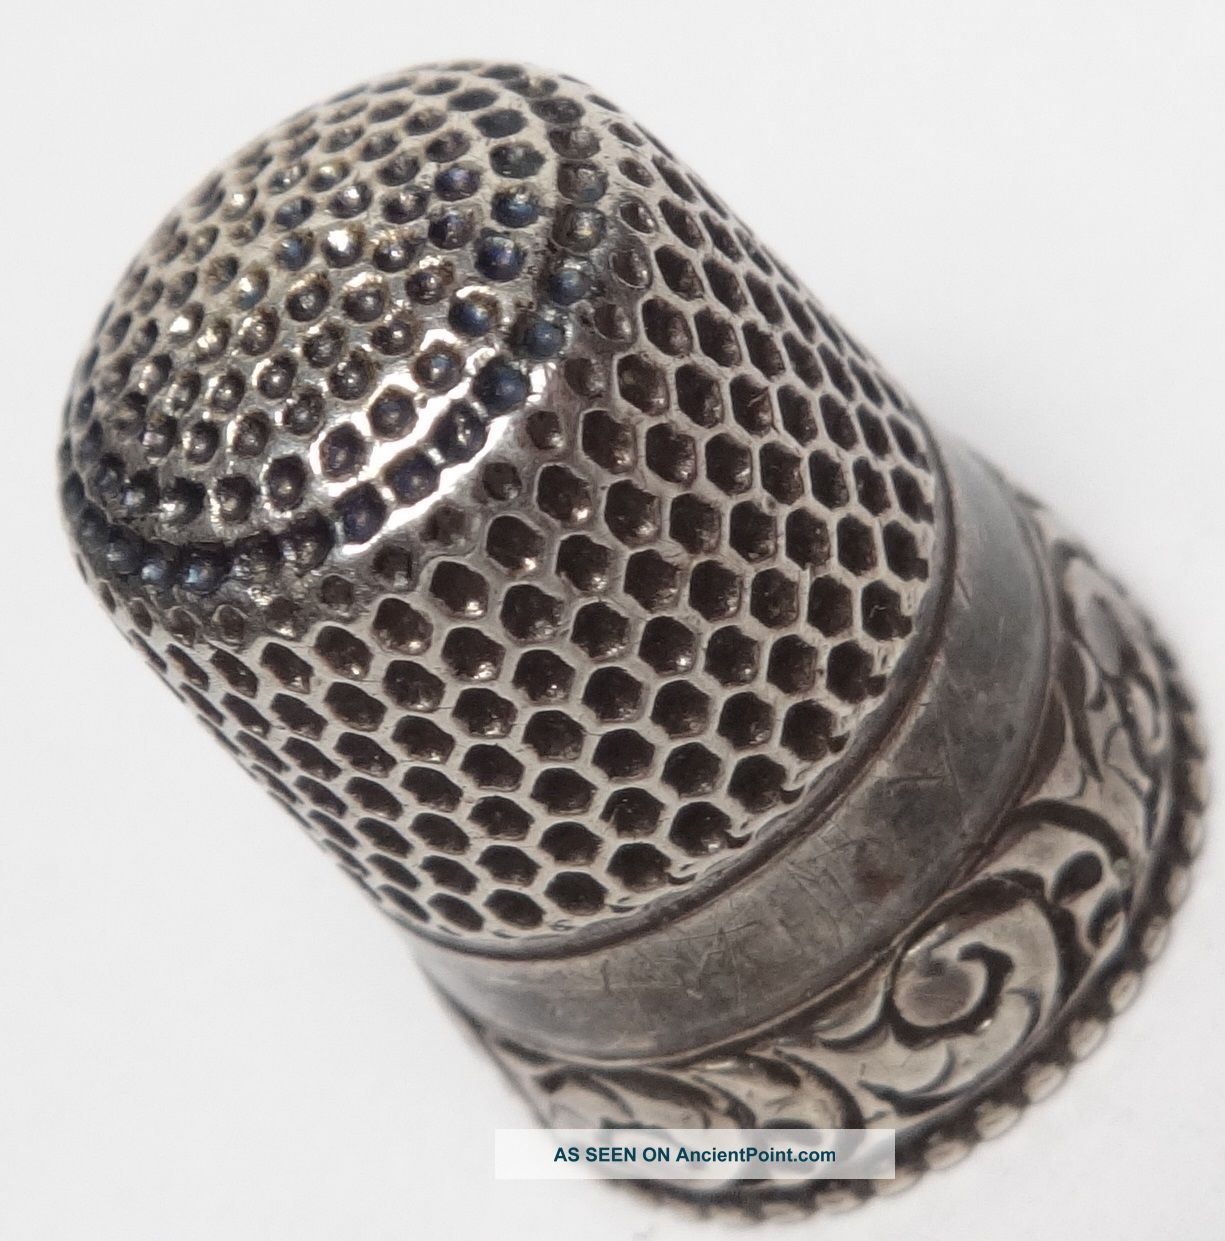 Vintage Sterling Silver Thimble Ornate Scrolling Border Stern Bros Thimbles photo